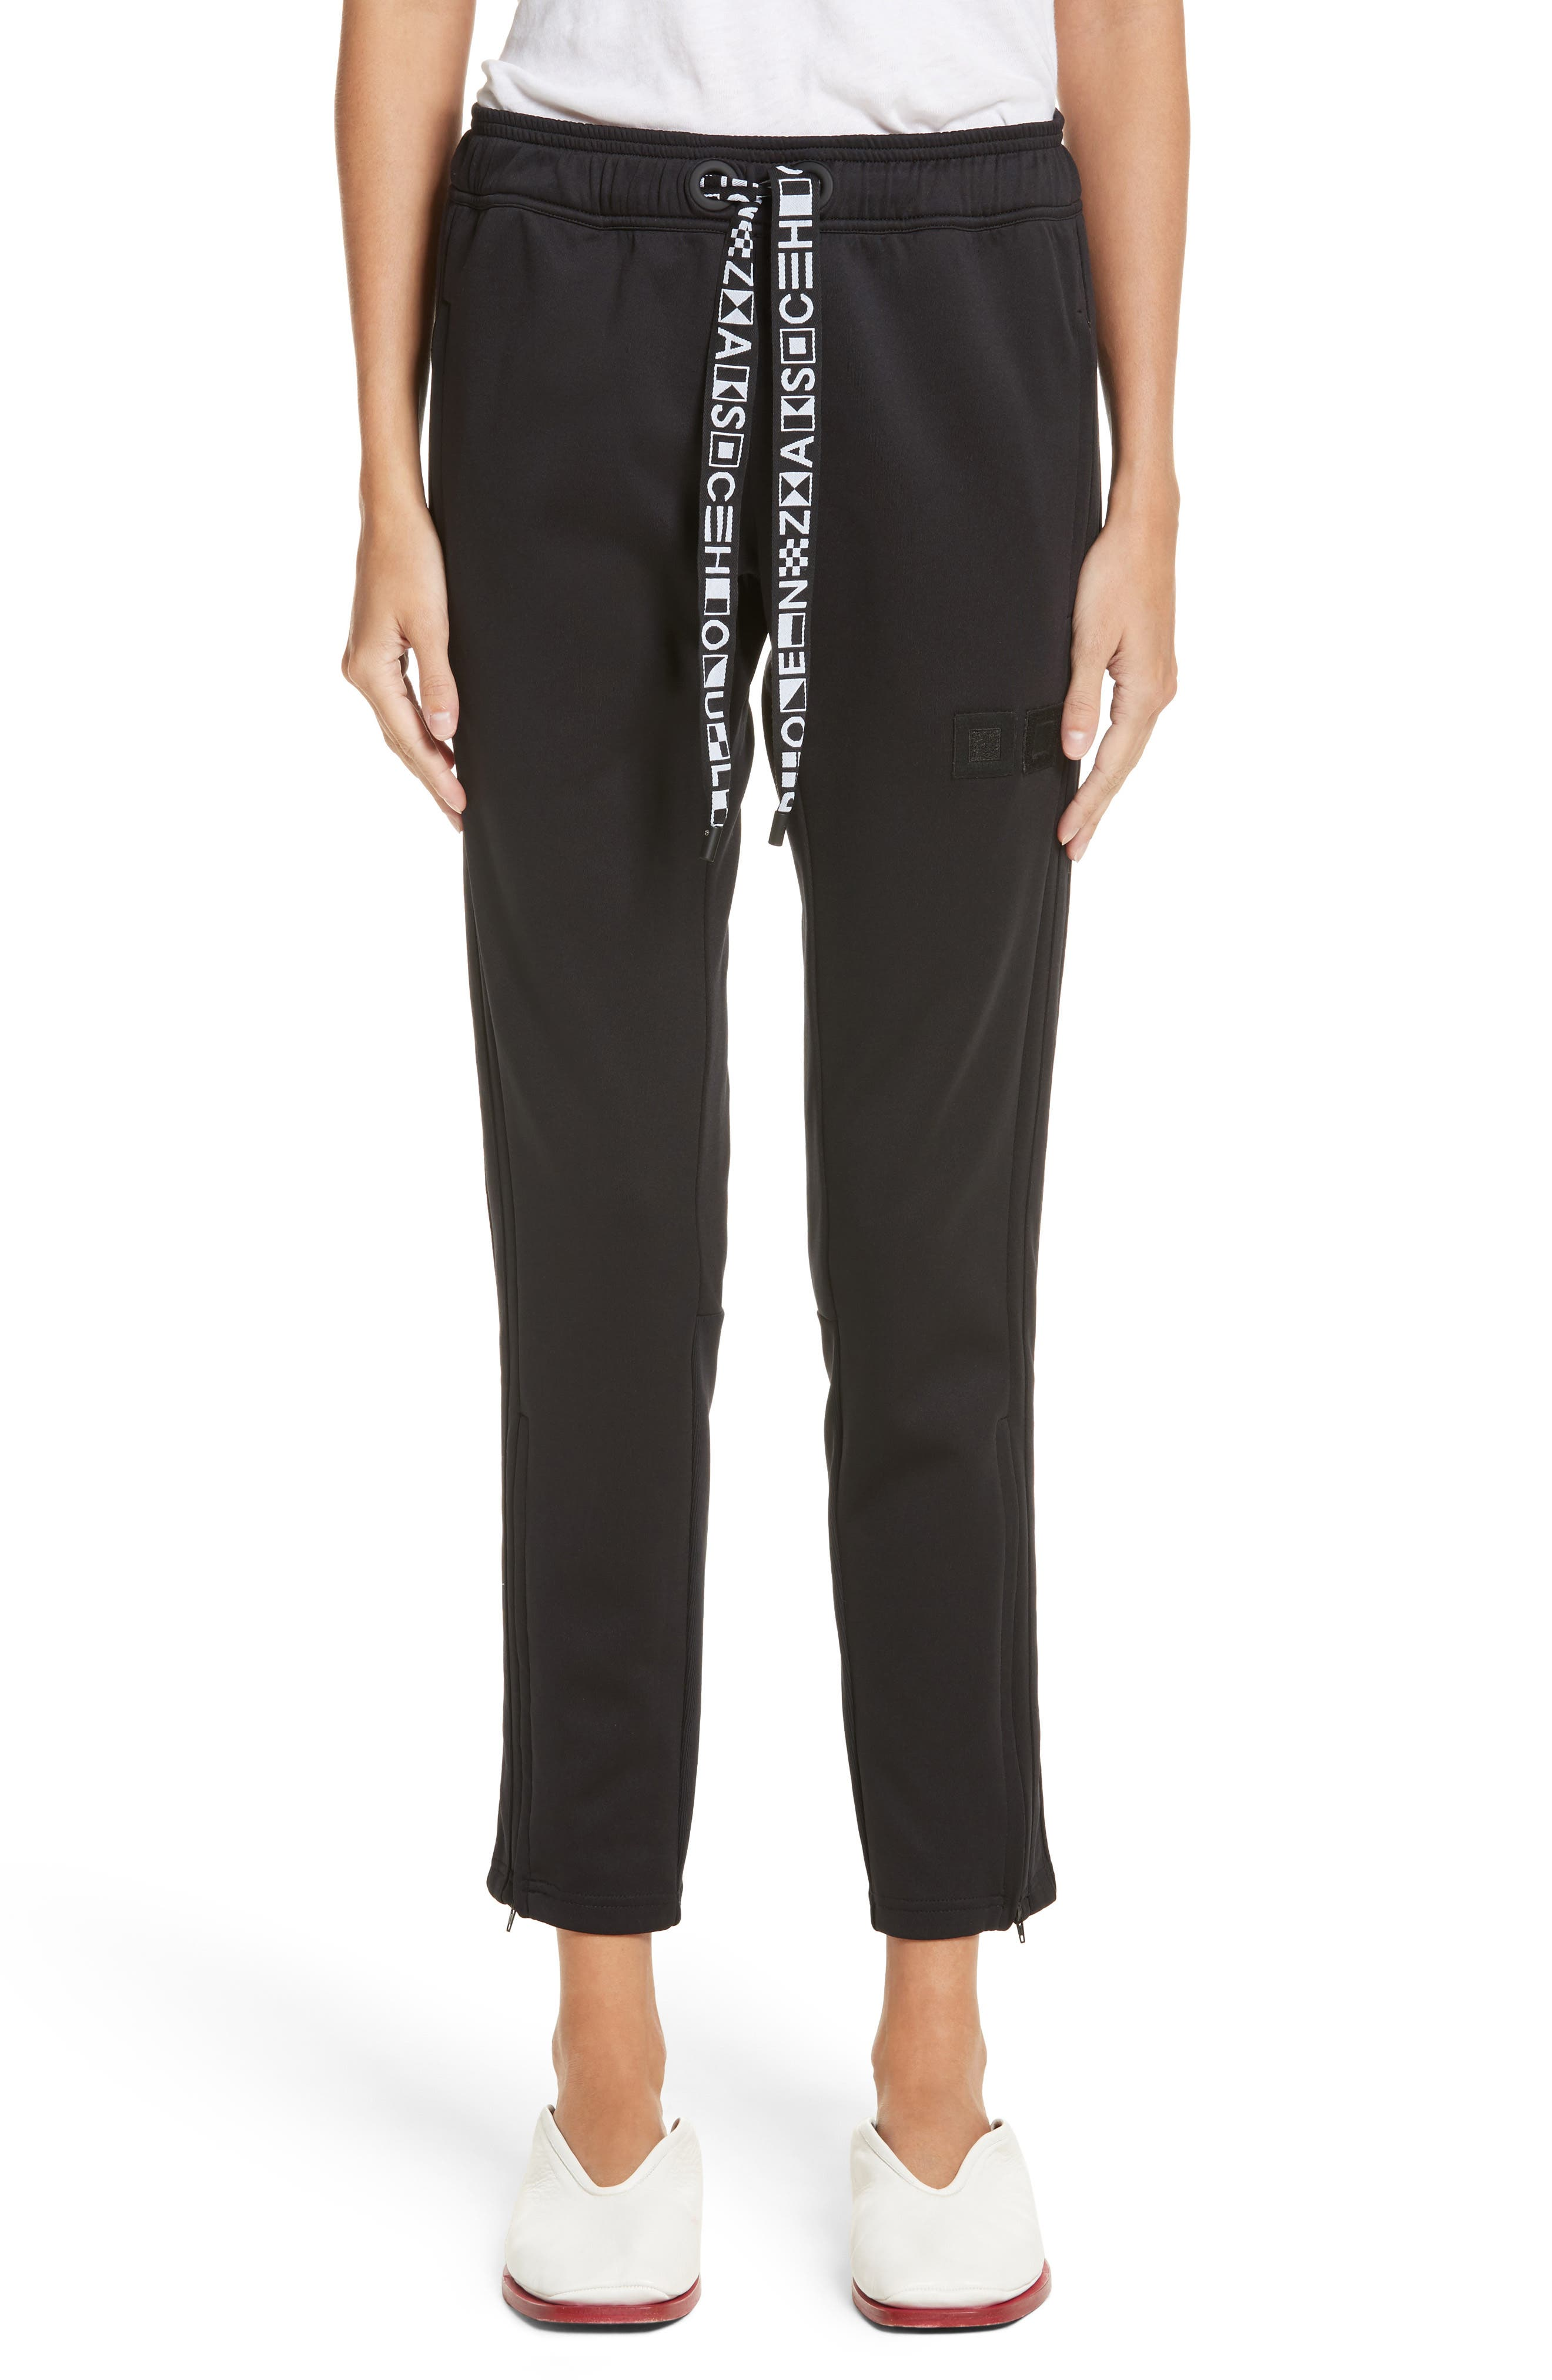 Main Image - Proenza Schouler PSWL Jersey Track Pants